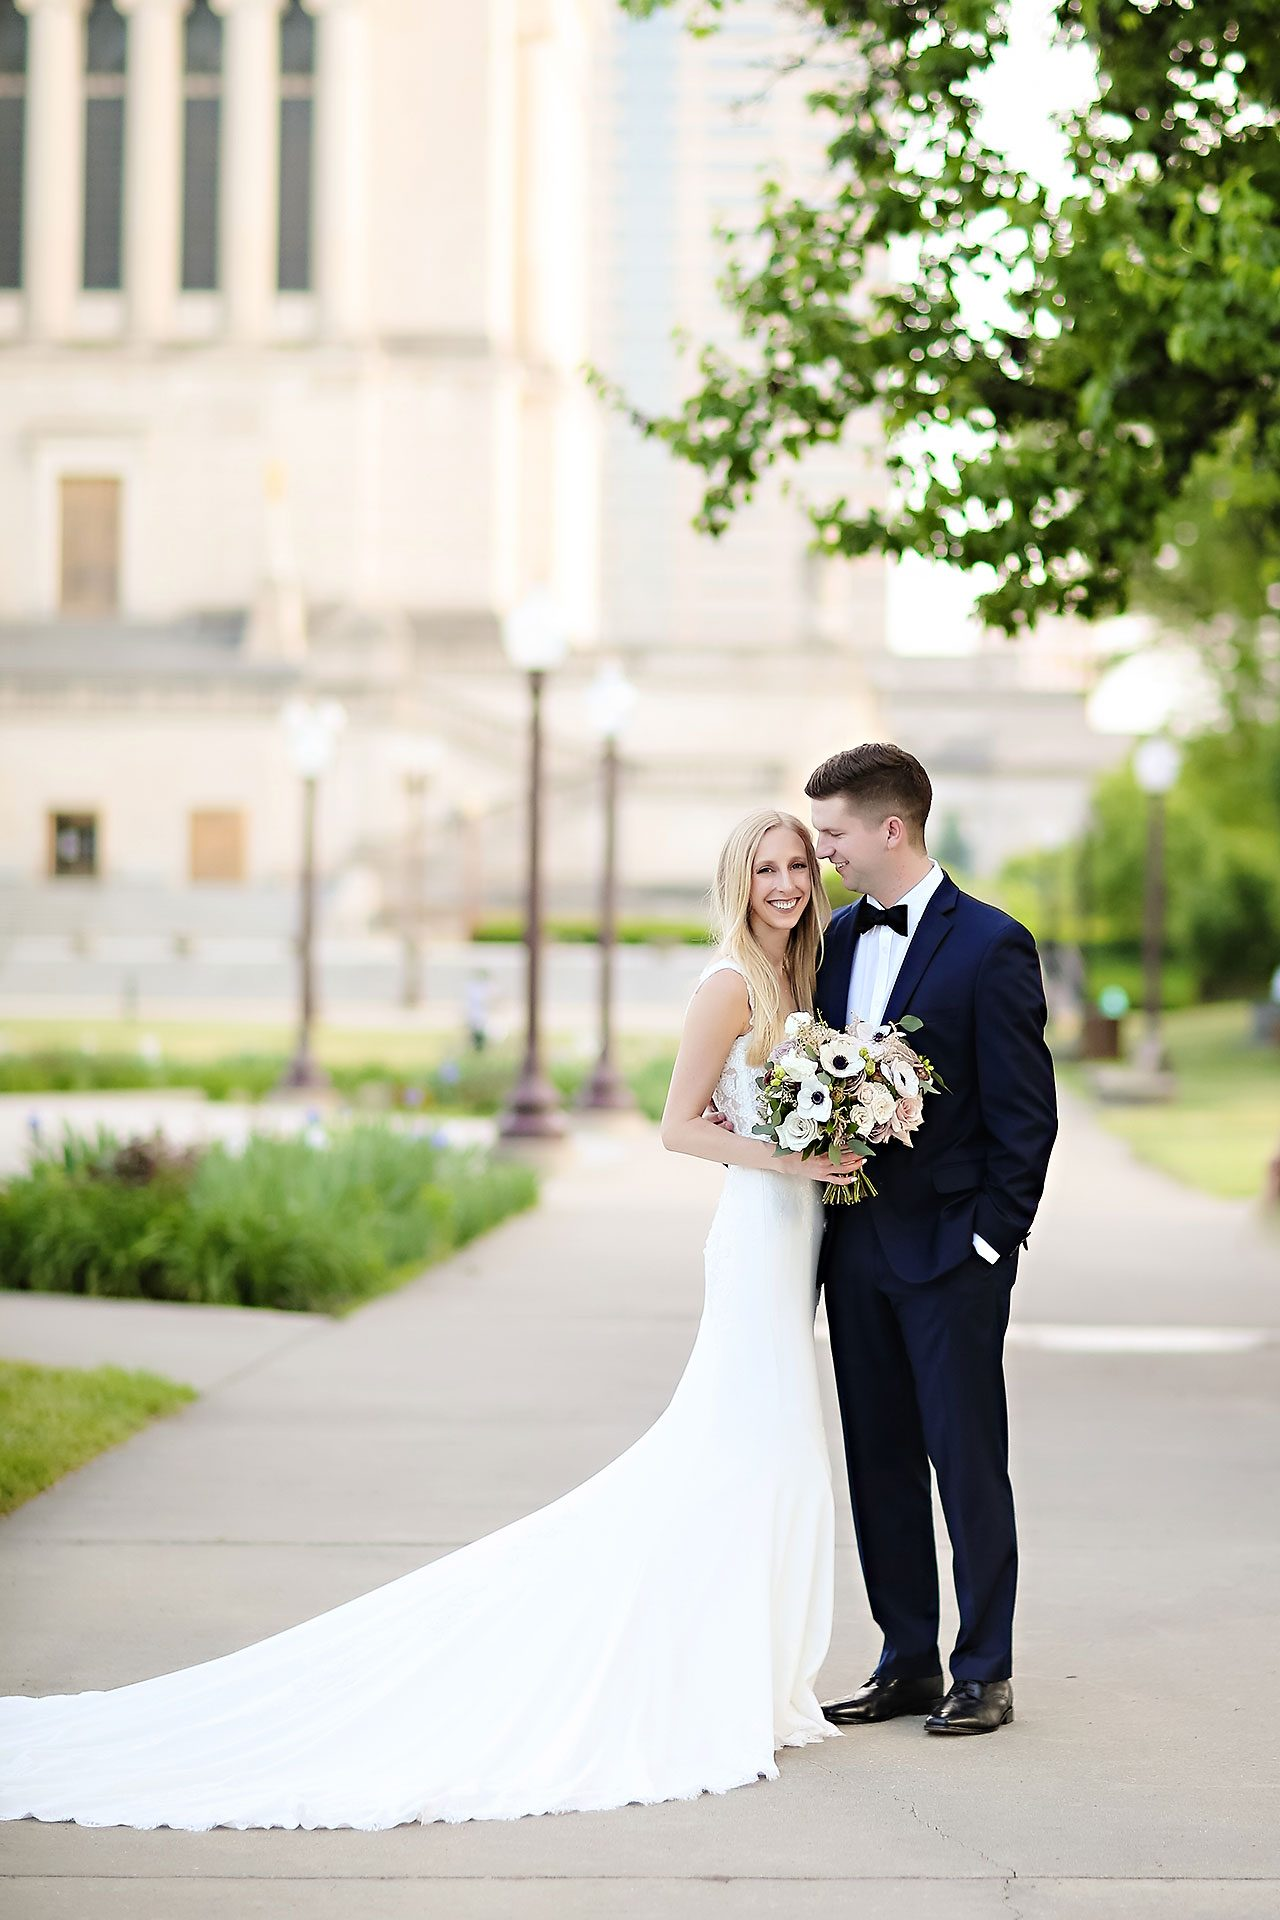 Molly Declan Scottish Rite Indianapolis Wedding 190